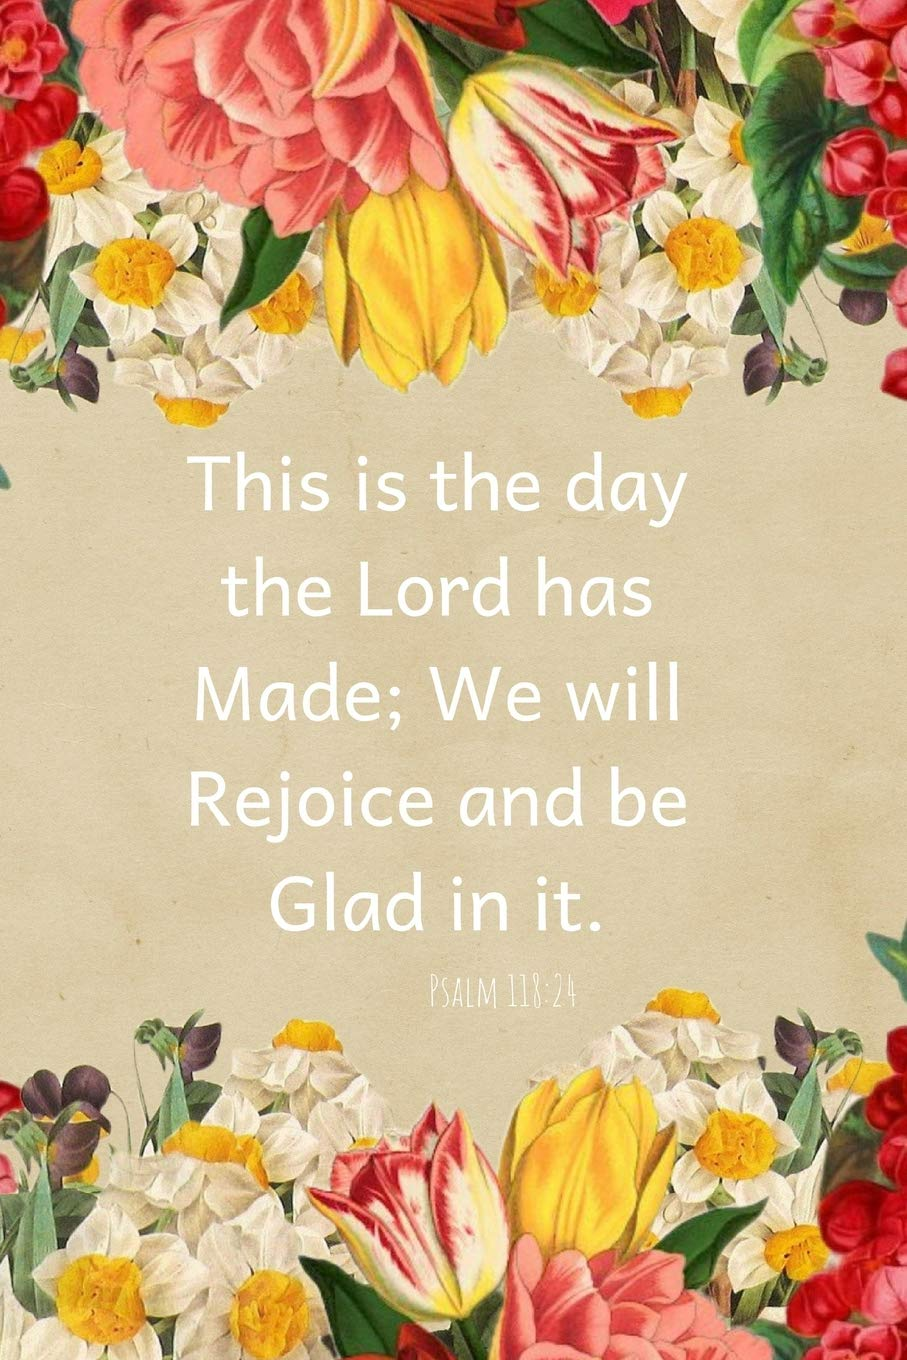 This is the day the Lord has made, We will Rejoice and be Glad in it-Psalm  118:24: A Christian Journal Filled with Favorite Bible Verses (KJV) - Pink  and Yellow Flowers- Volume